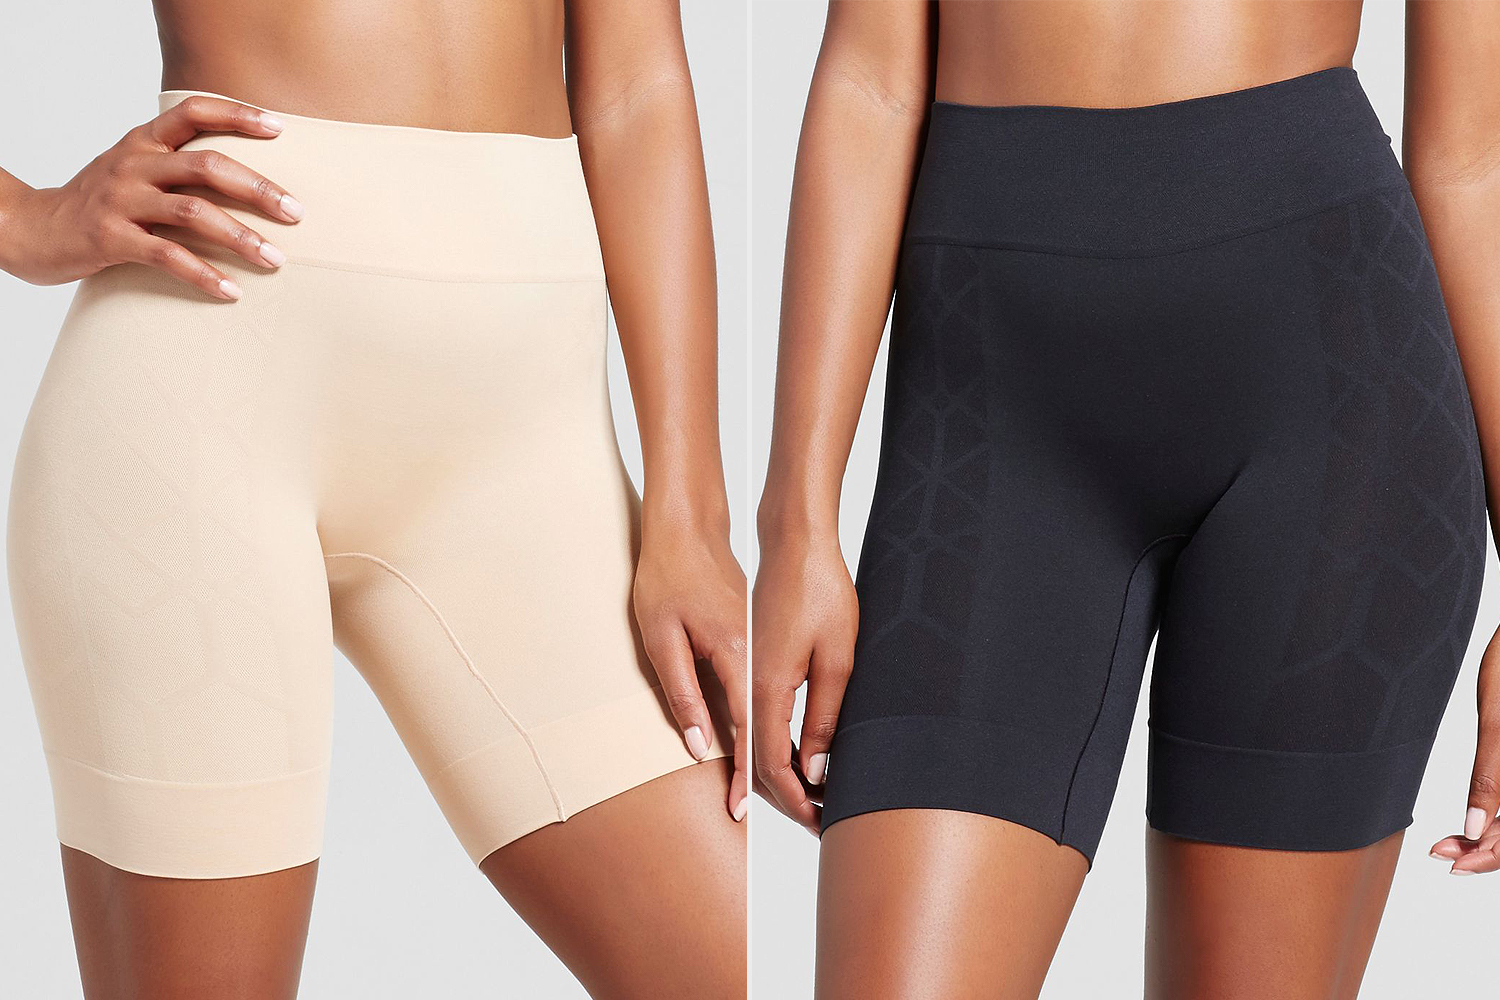 target jockey under dress anti chafing shorts